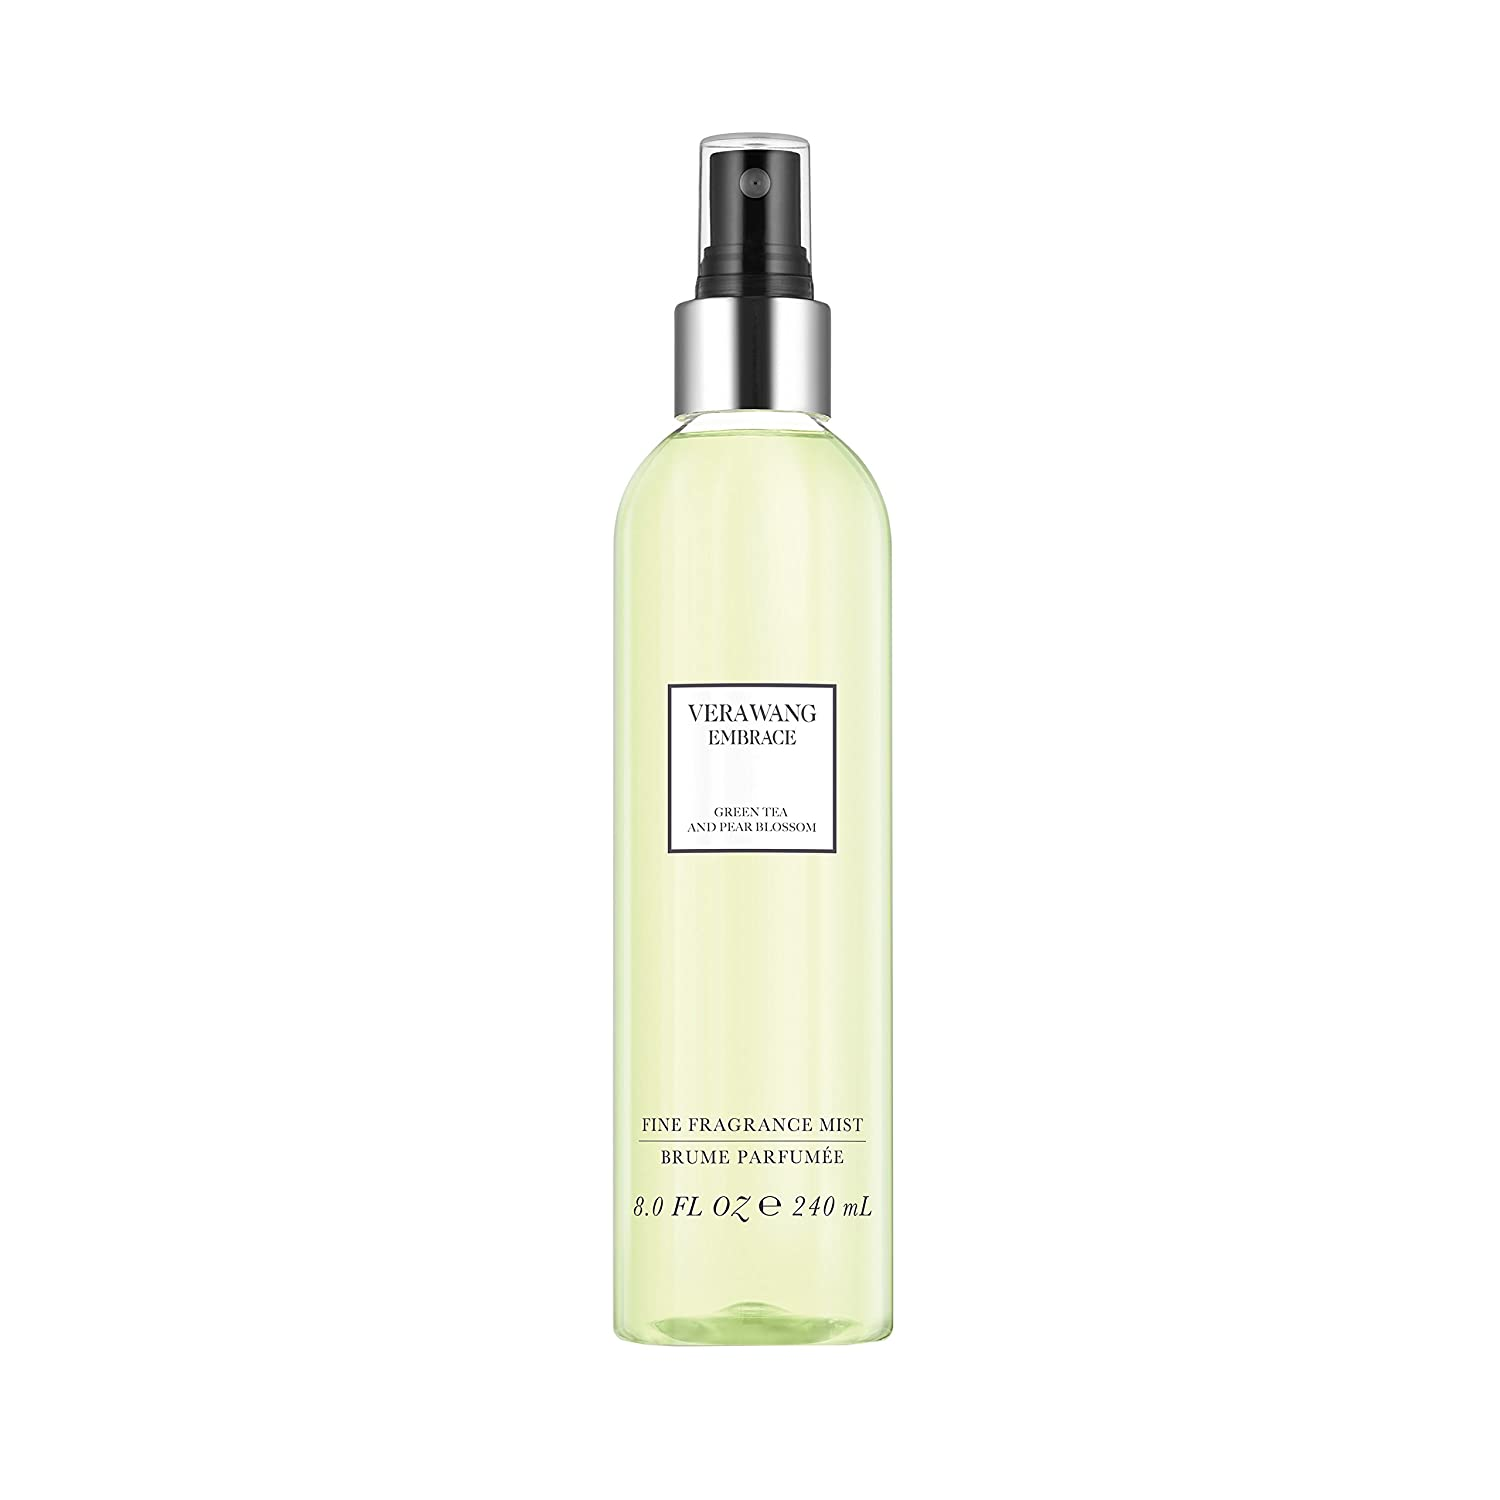 Vera Wang Embrace Body Mist, Green Tea and Pear Blossom, 240 ml Coty 3614223460212